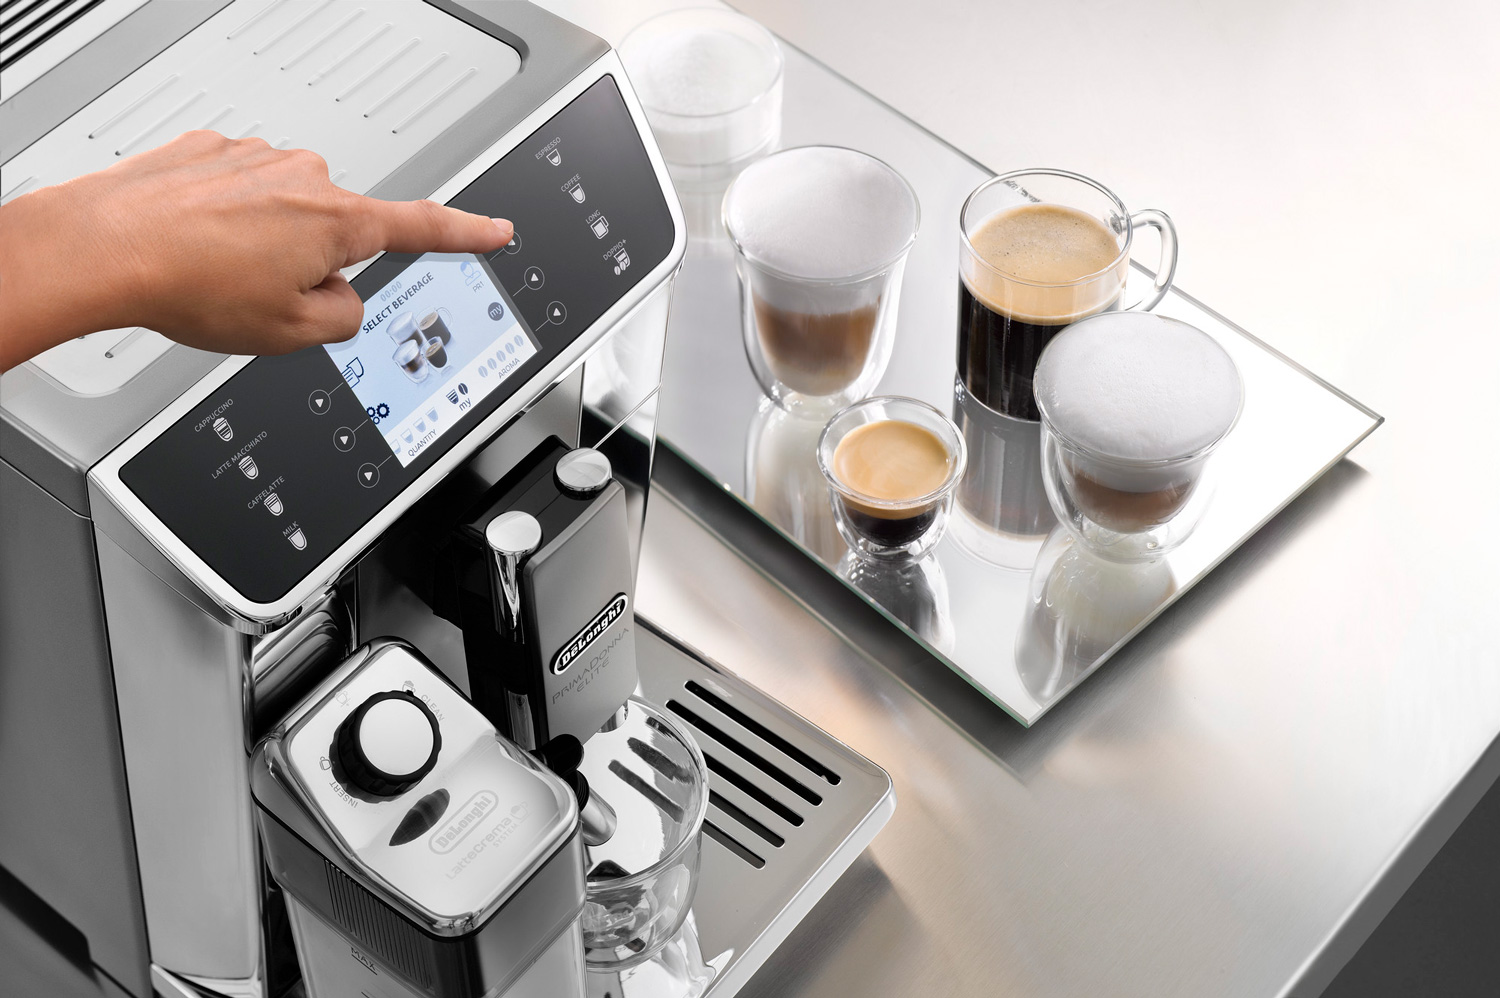 pressing a button on a coffee machine